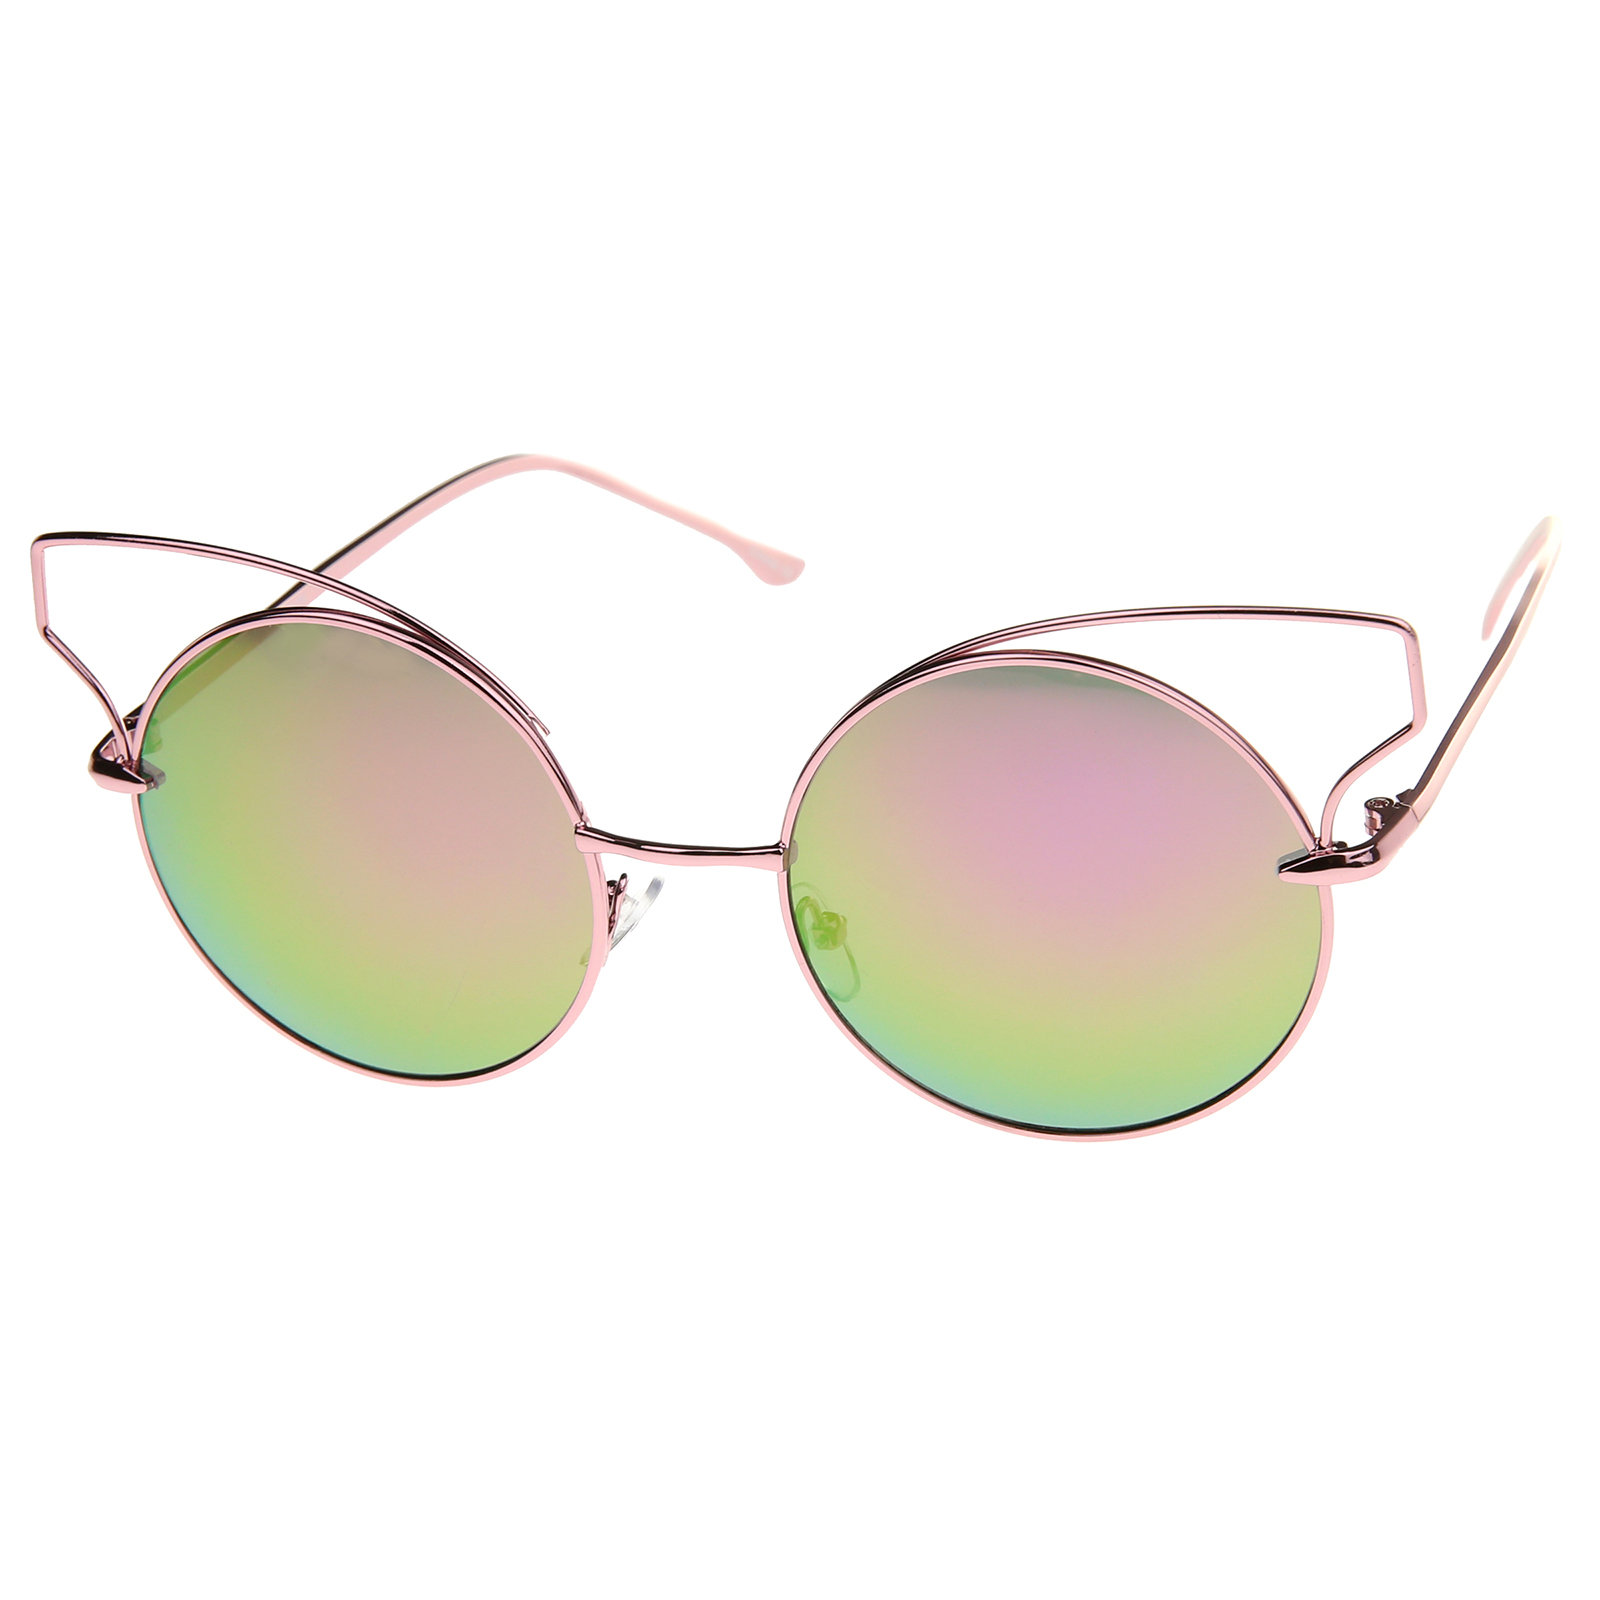 Wire Frame Cat Eye Glasses : sunglass.LA Wire Open Metal Frame Color Mirror Lens Round ...